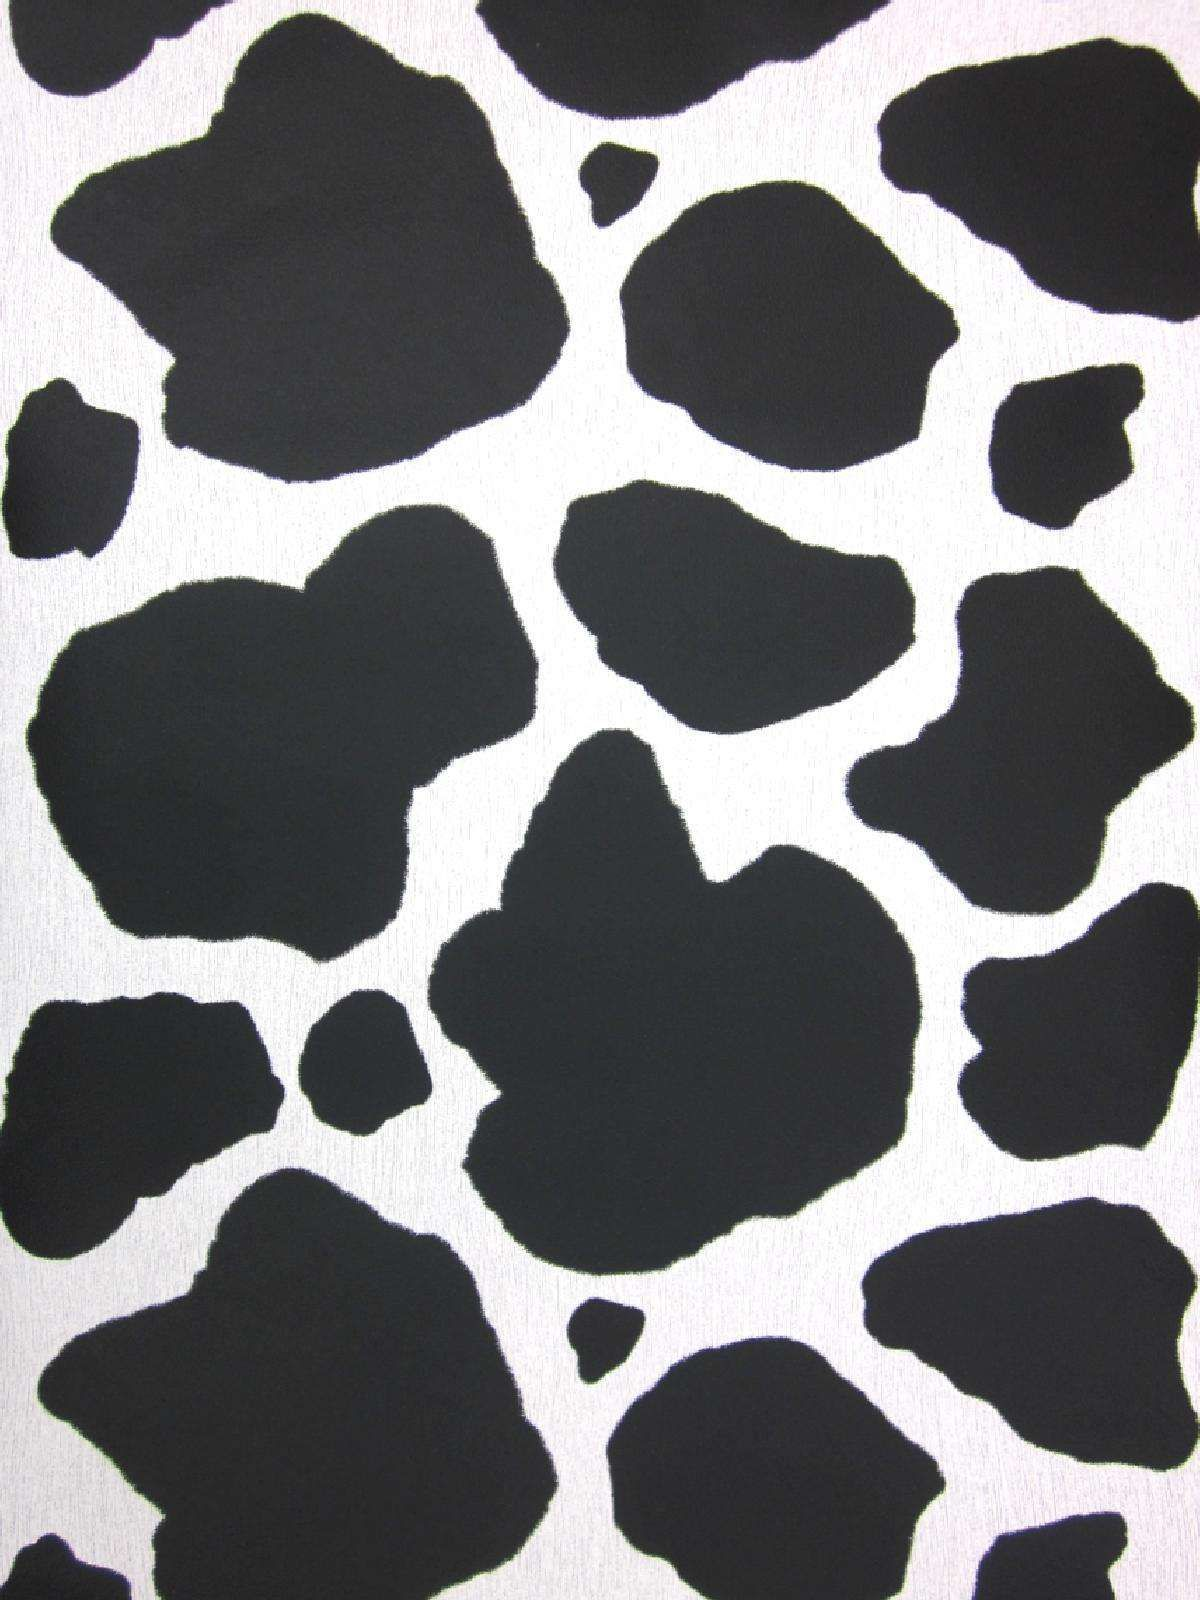 Cow Aesthetic Wallpapers - Wallpaper Cave